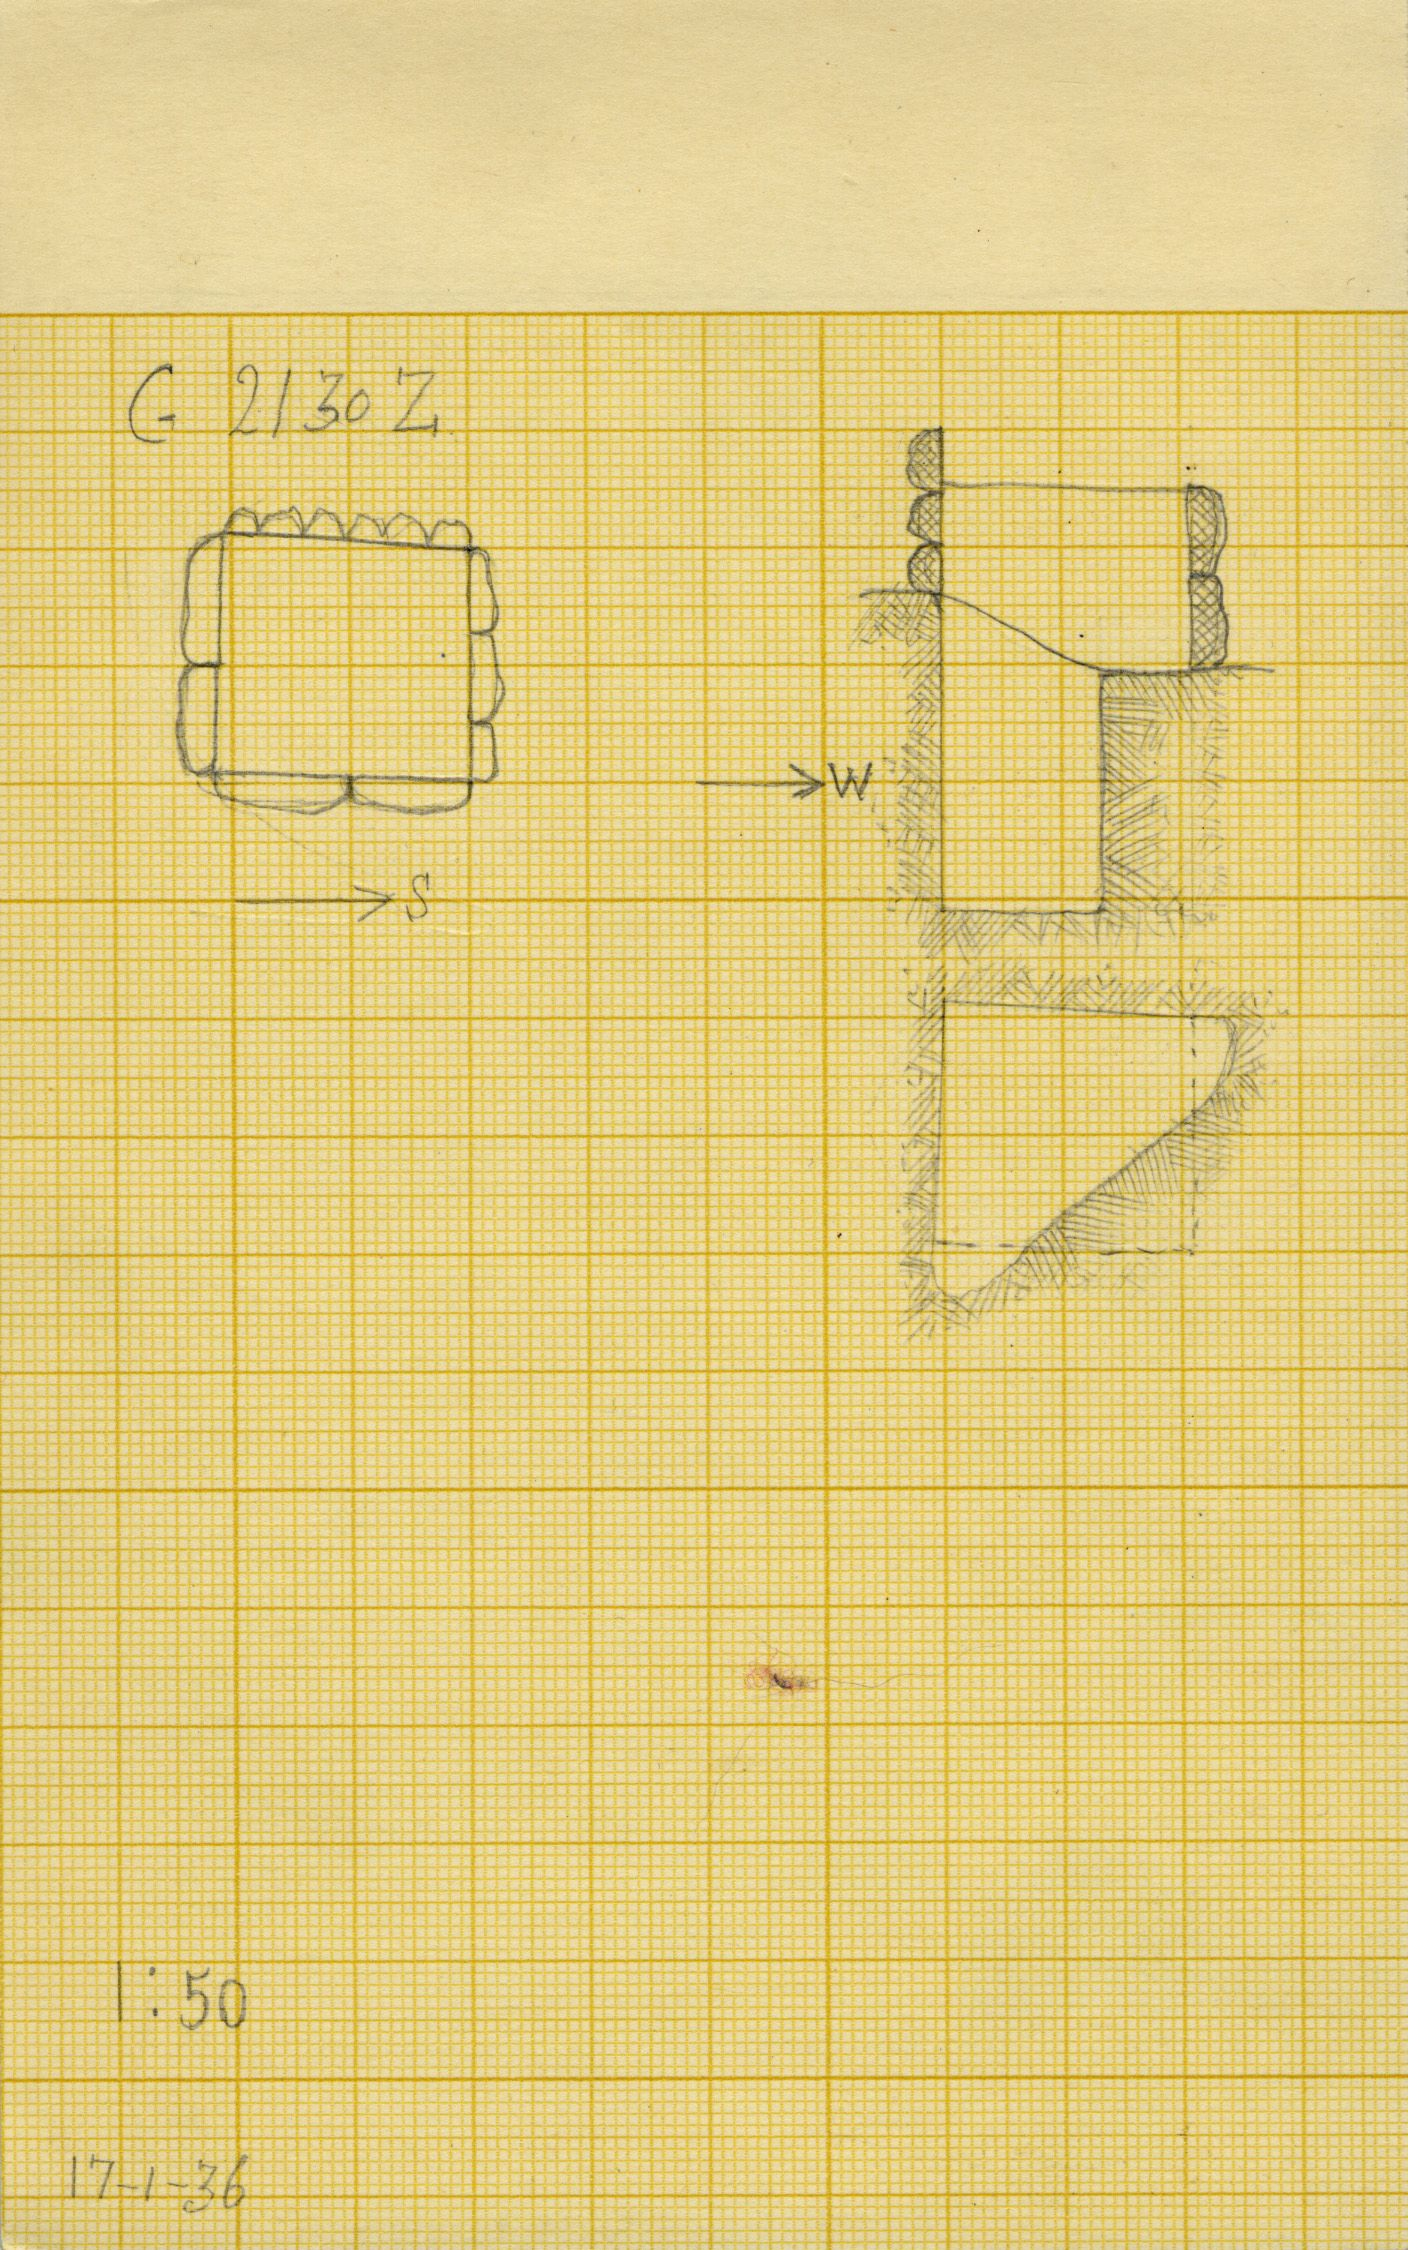 Maps and plans: G 2130, Shaft Z